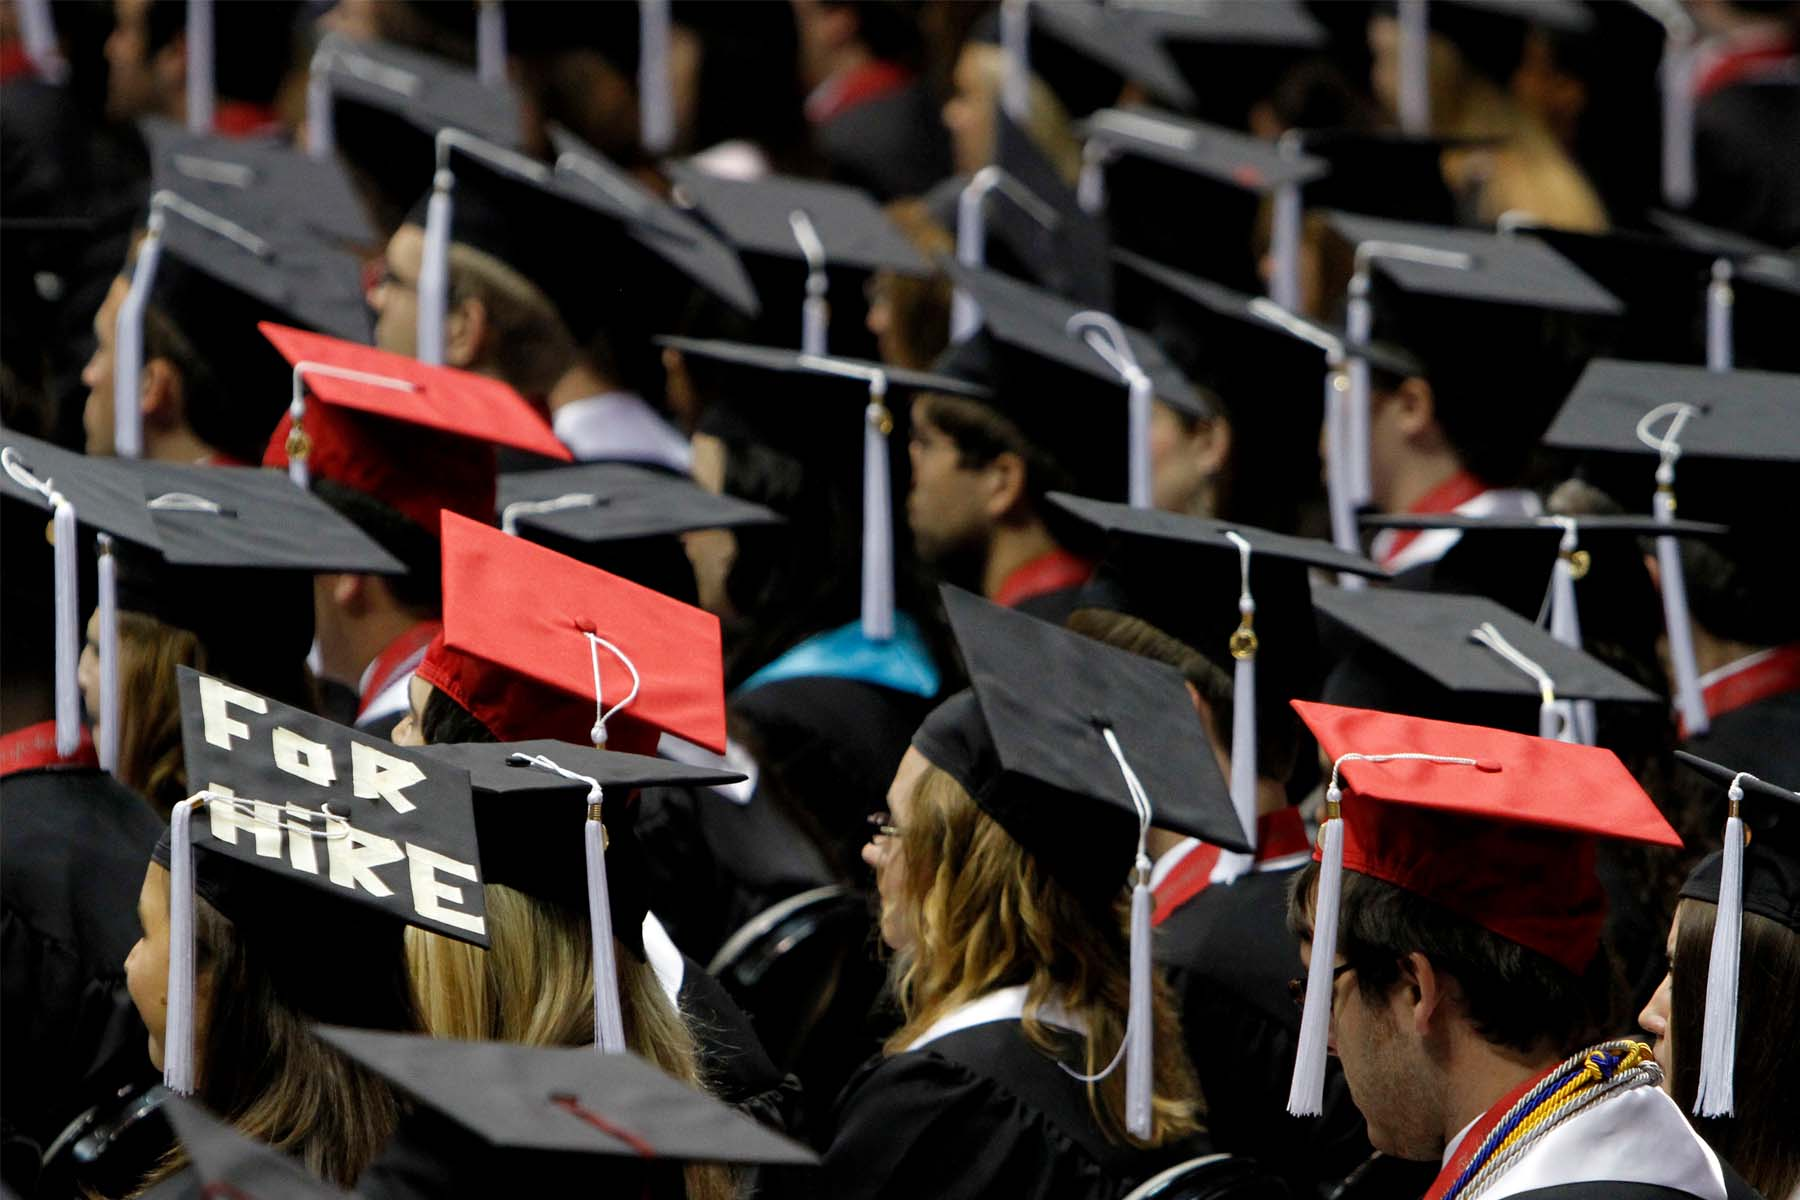 Tips for Recent Grads: How to Find a Great Career, Not Just a Good Job